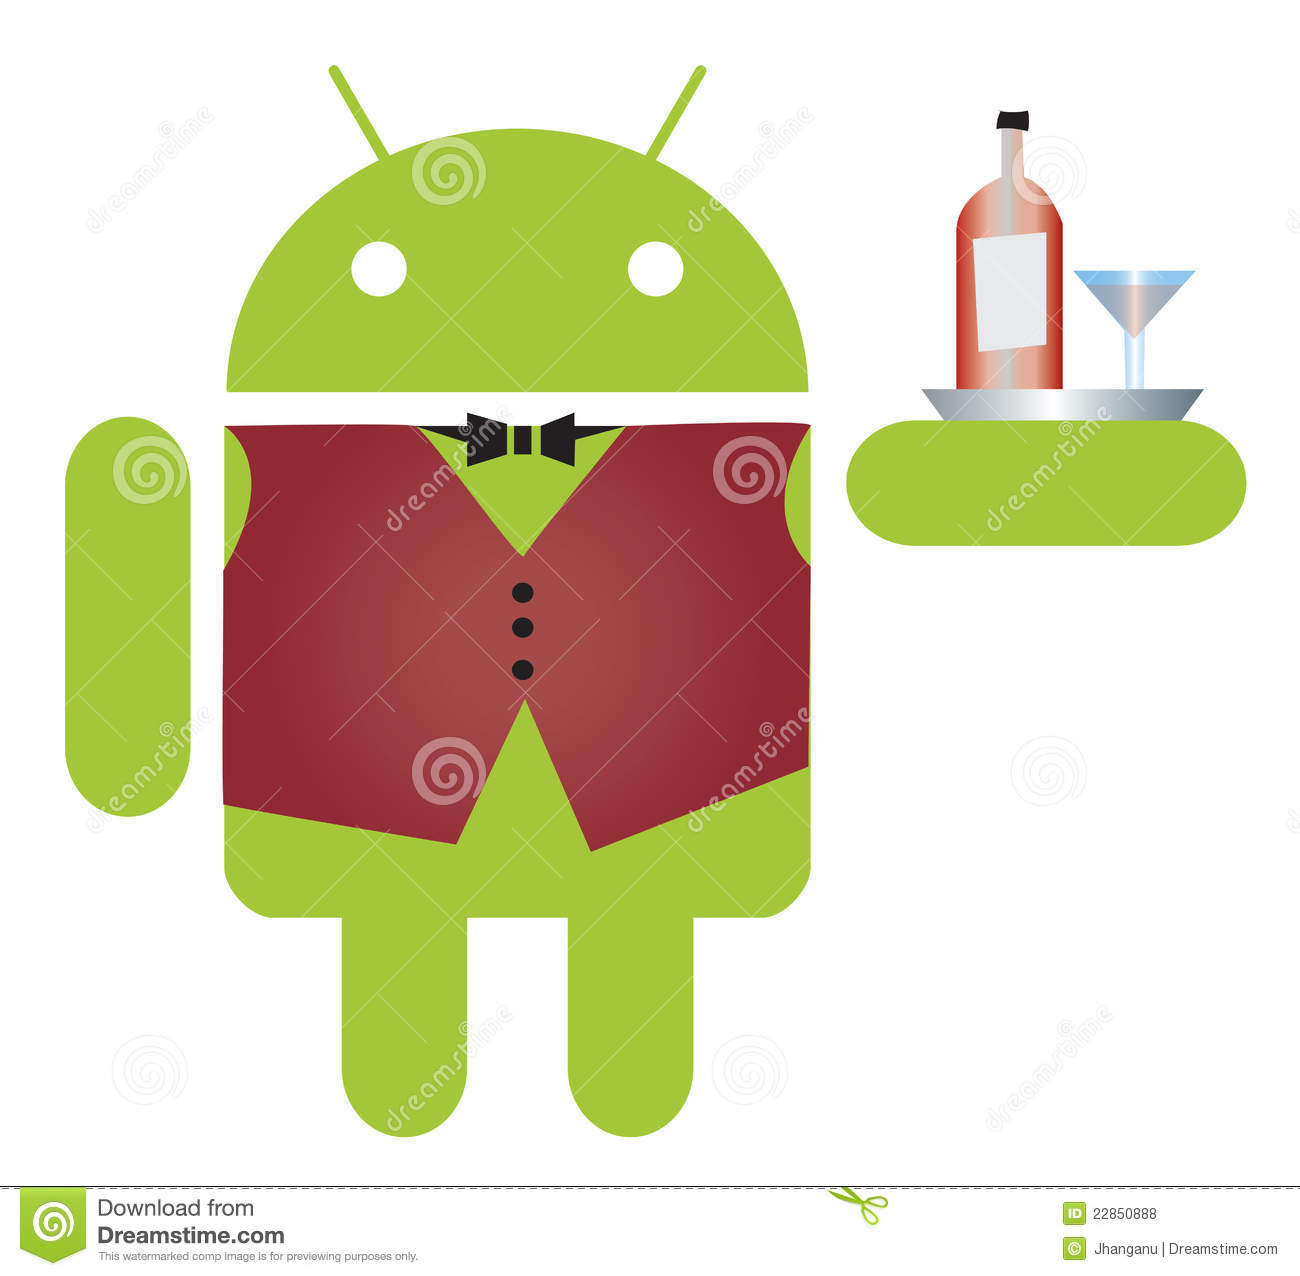 Mobile Android waiter